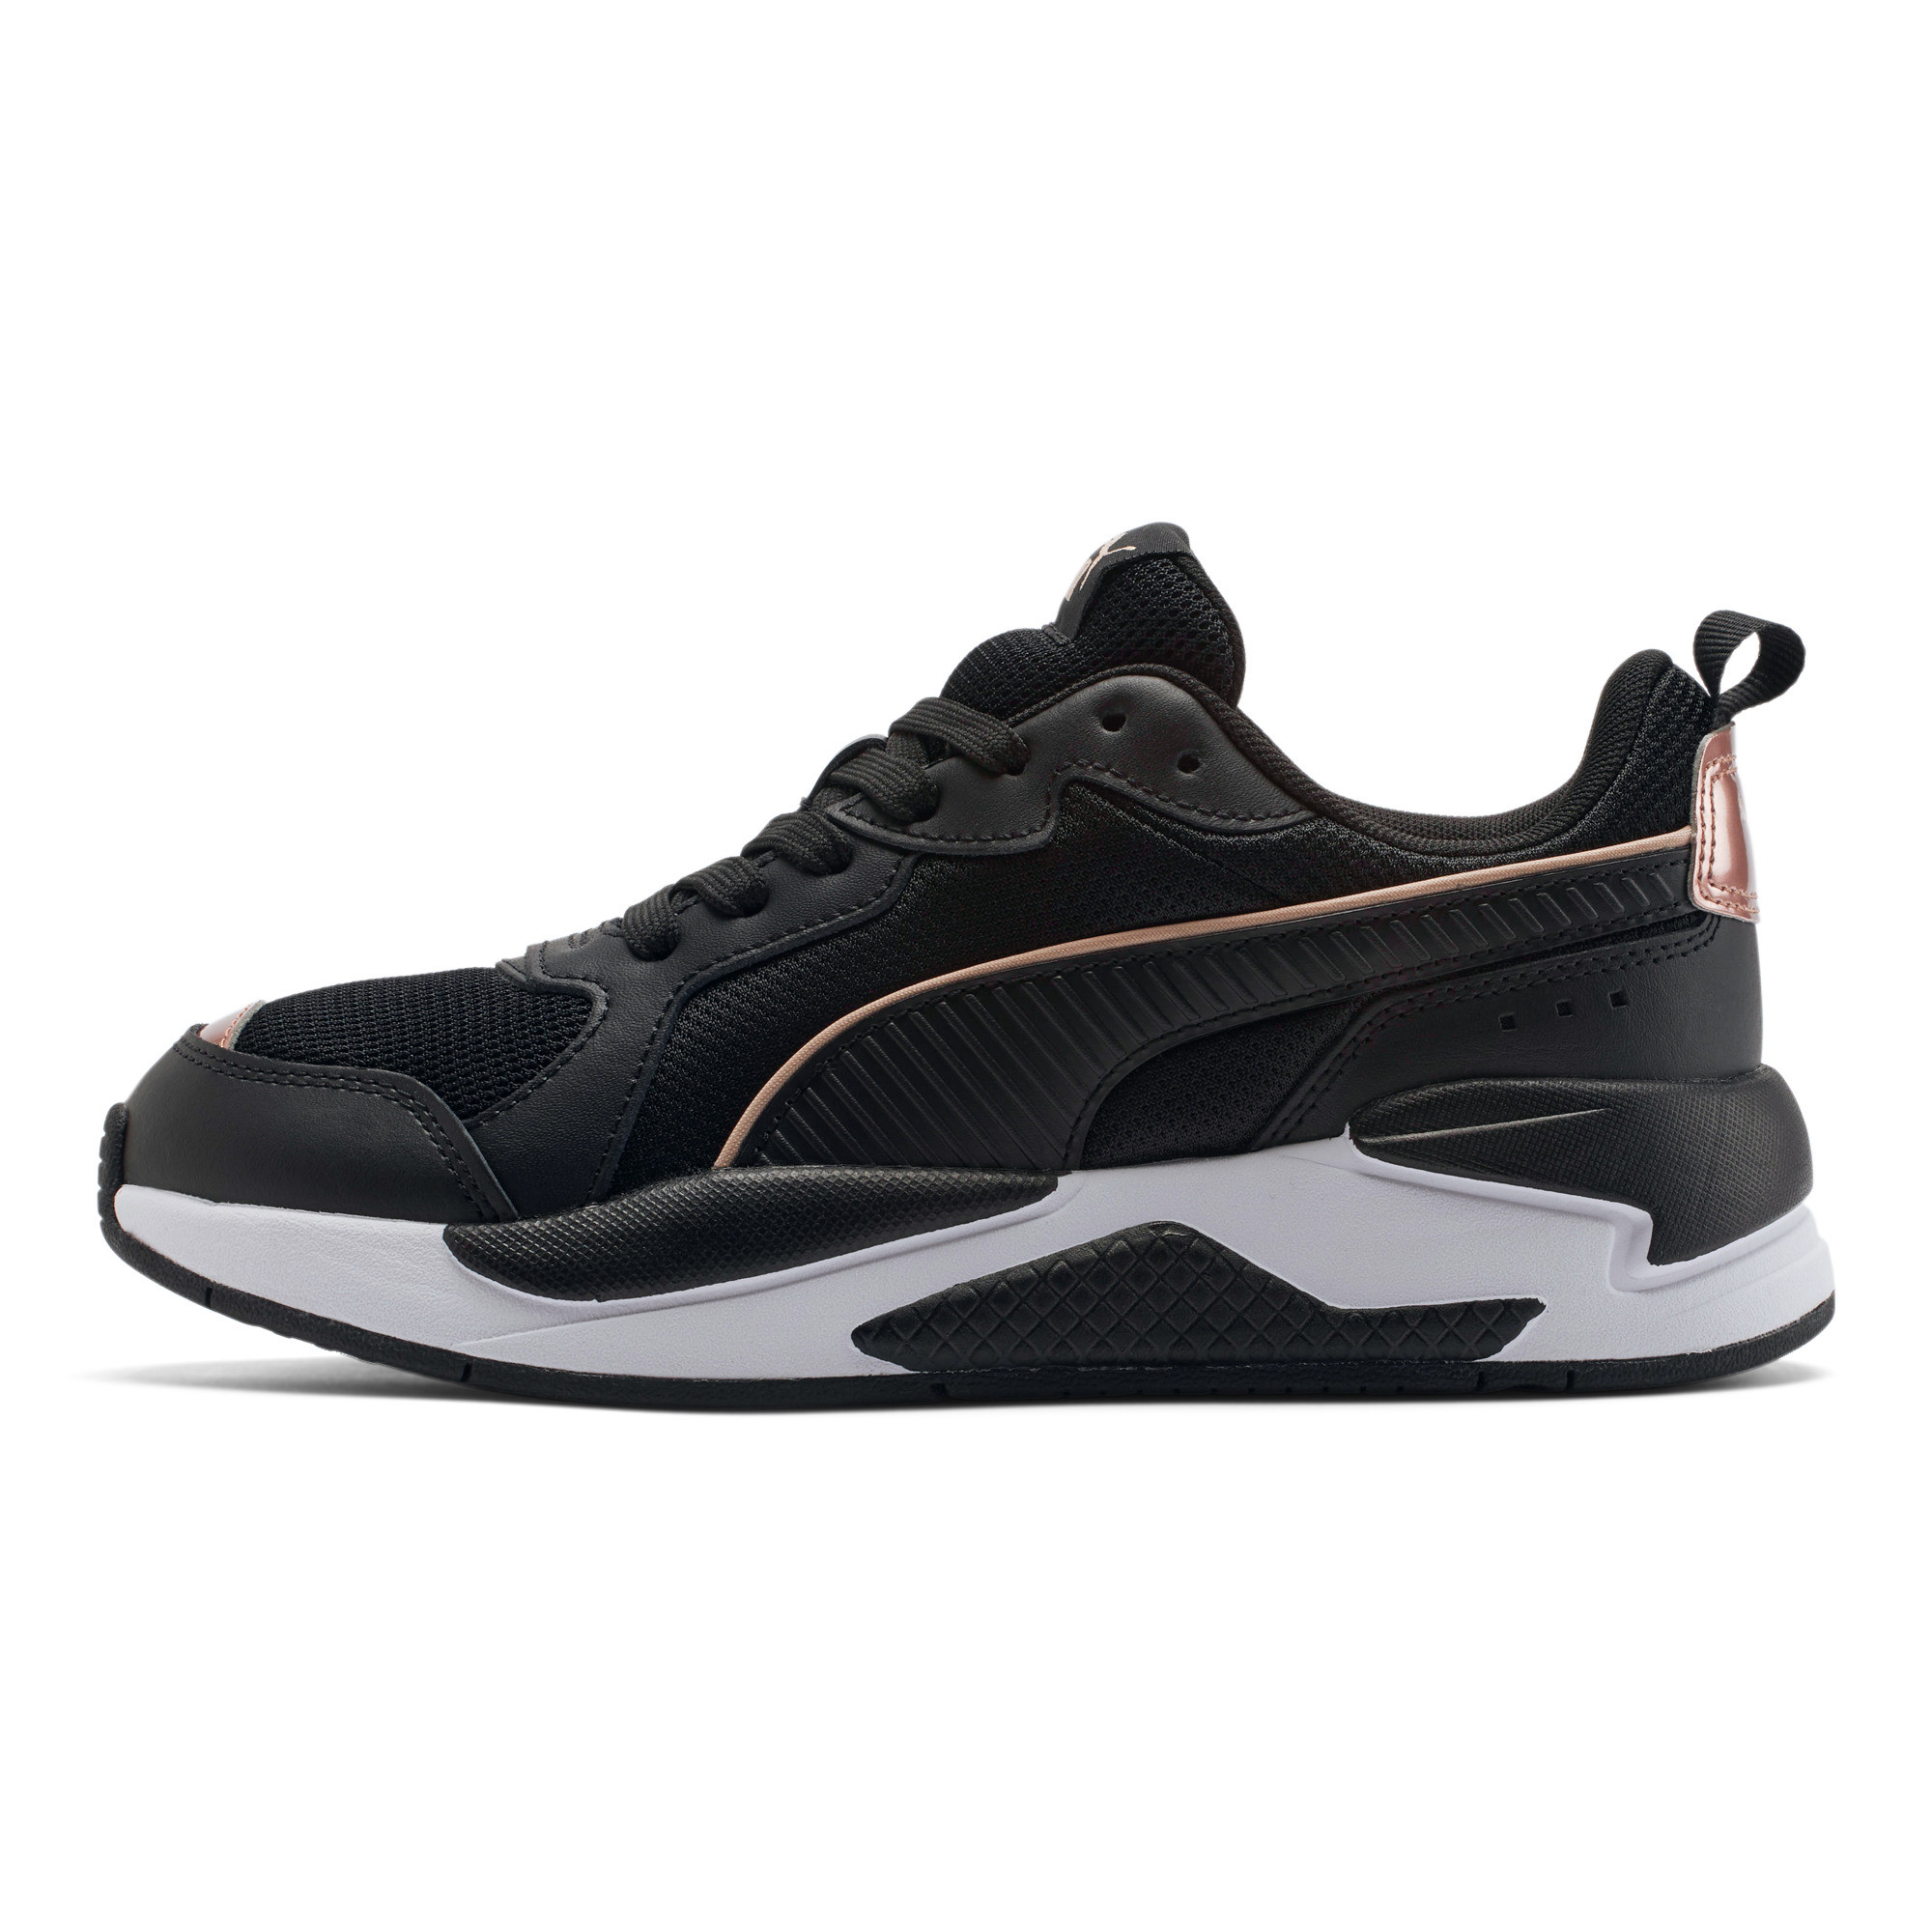 PUMA-X-RAY-Metallic-Shine-Women-039-s-Sneakers-Women-Shoe-Basics thumbnail 4